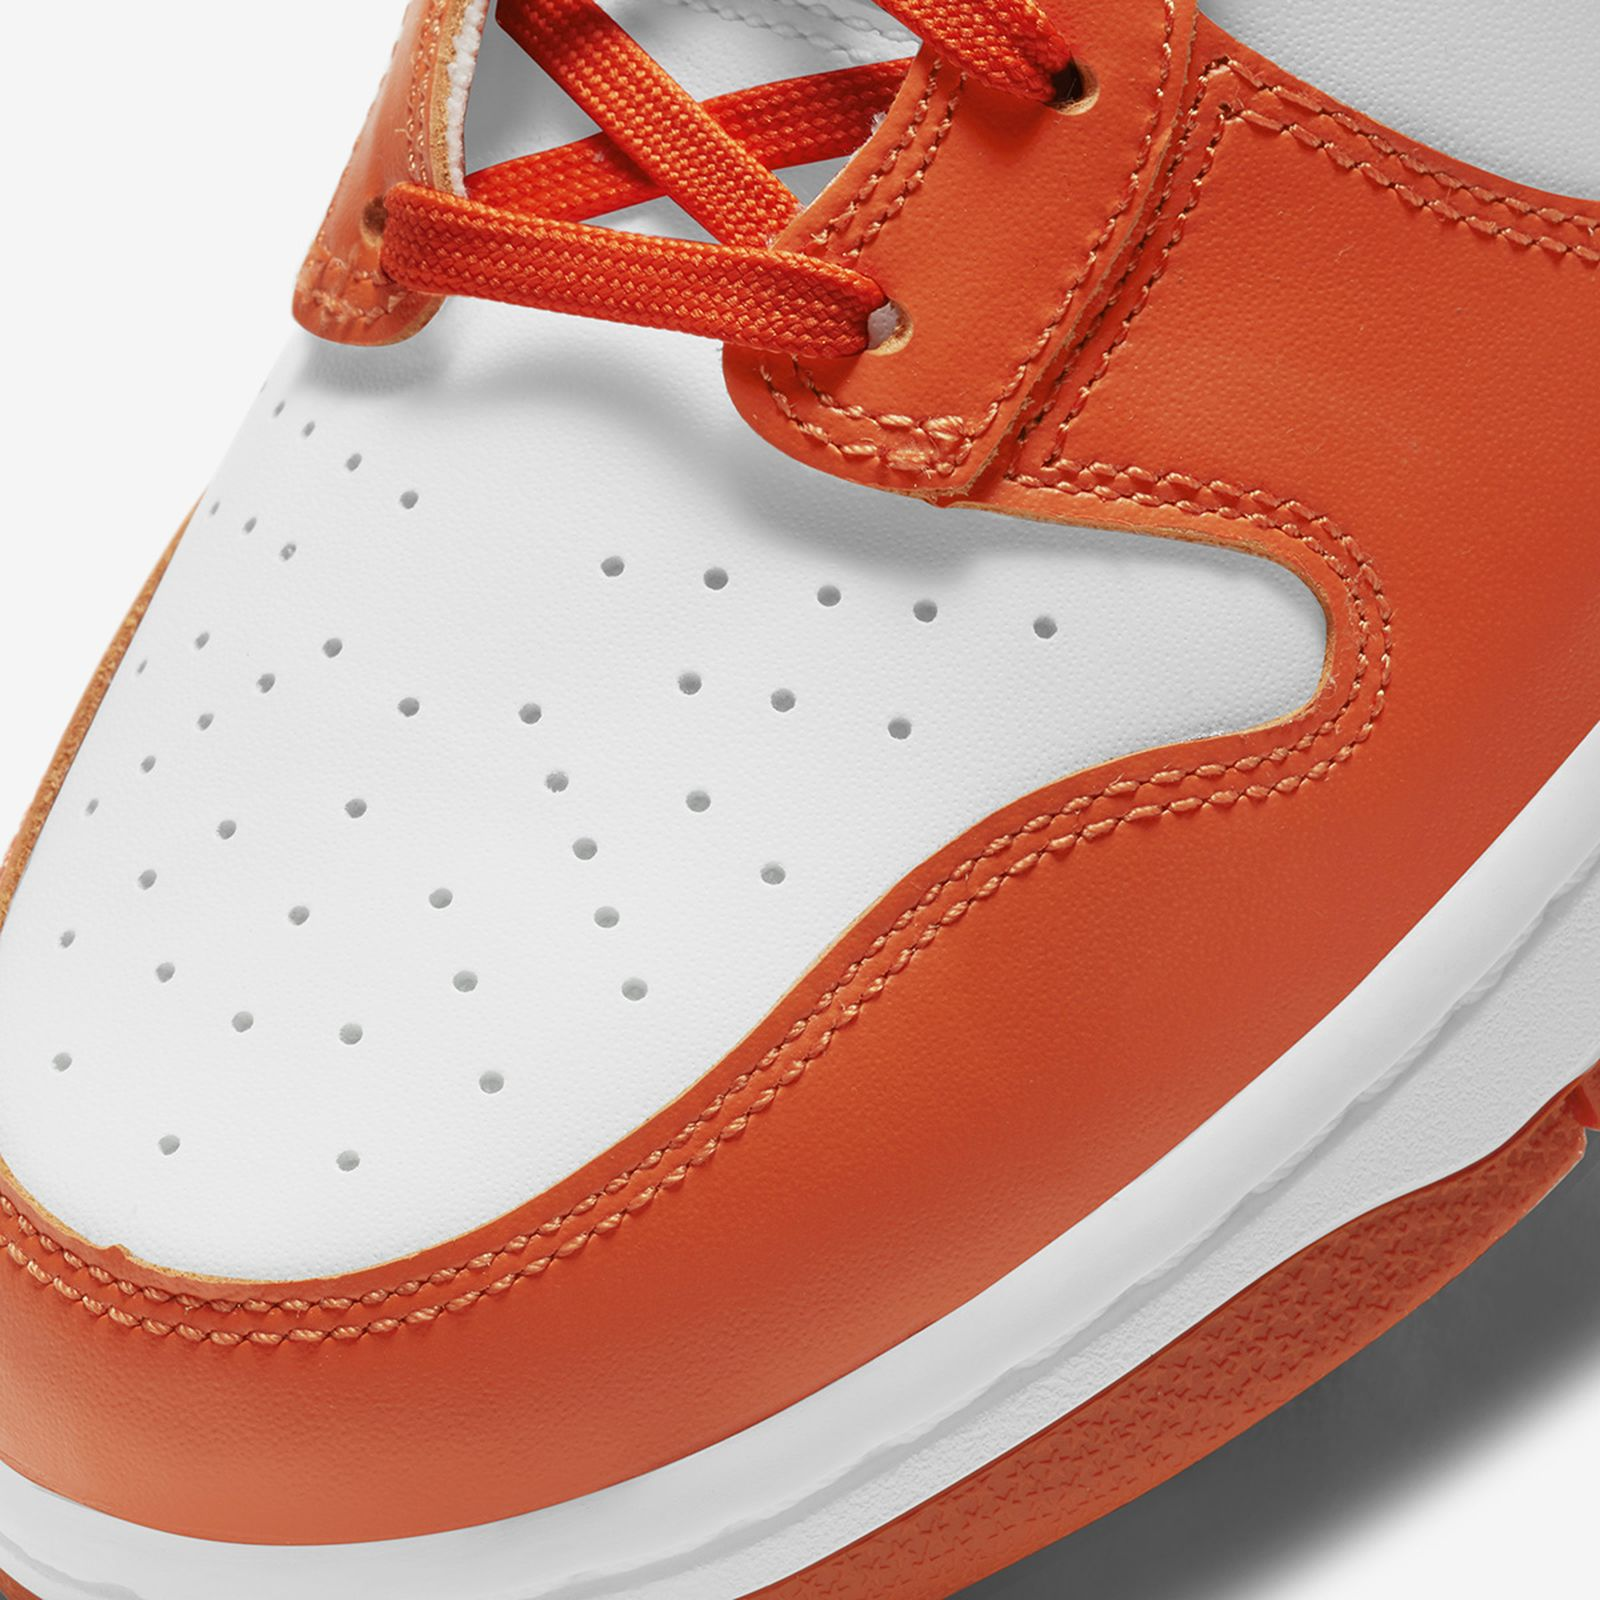 nike-dunk-spring-2021-release-date-price-1-24